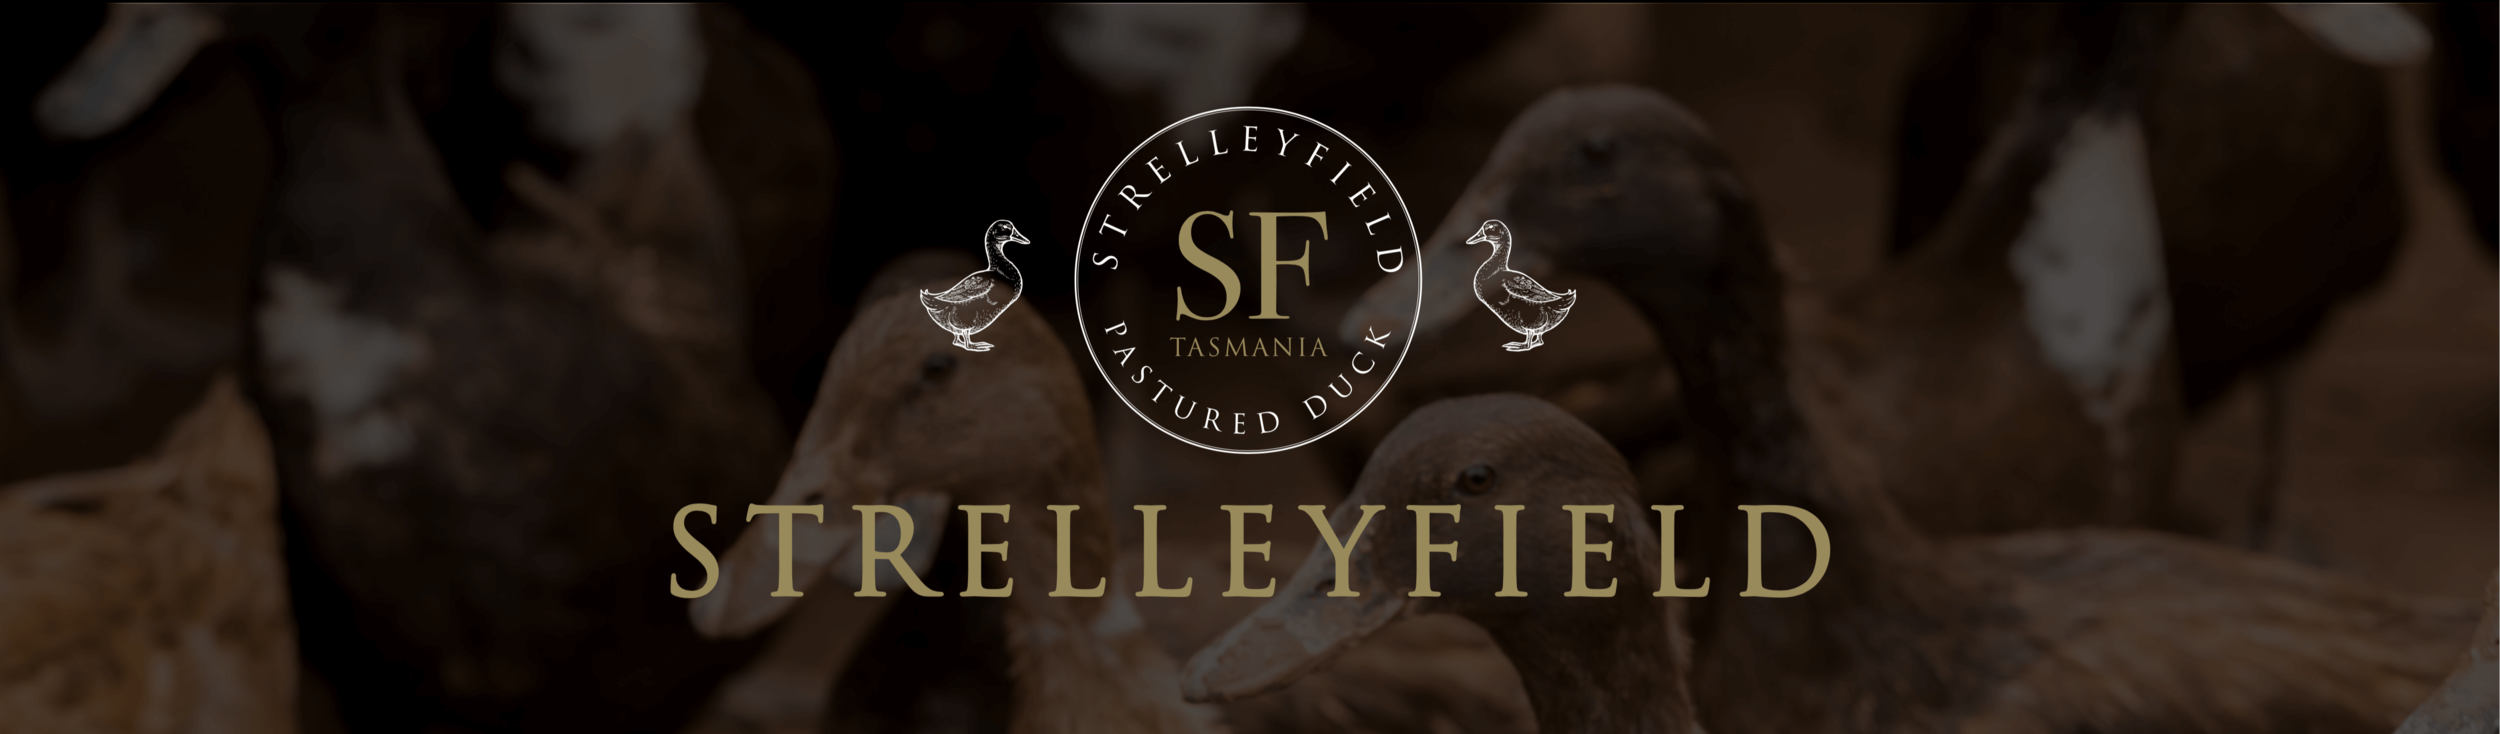 strelleyfield-banner.png